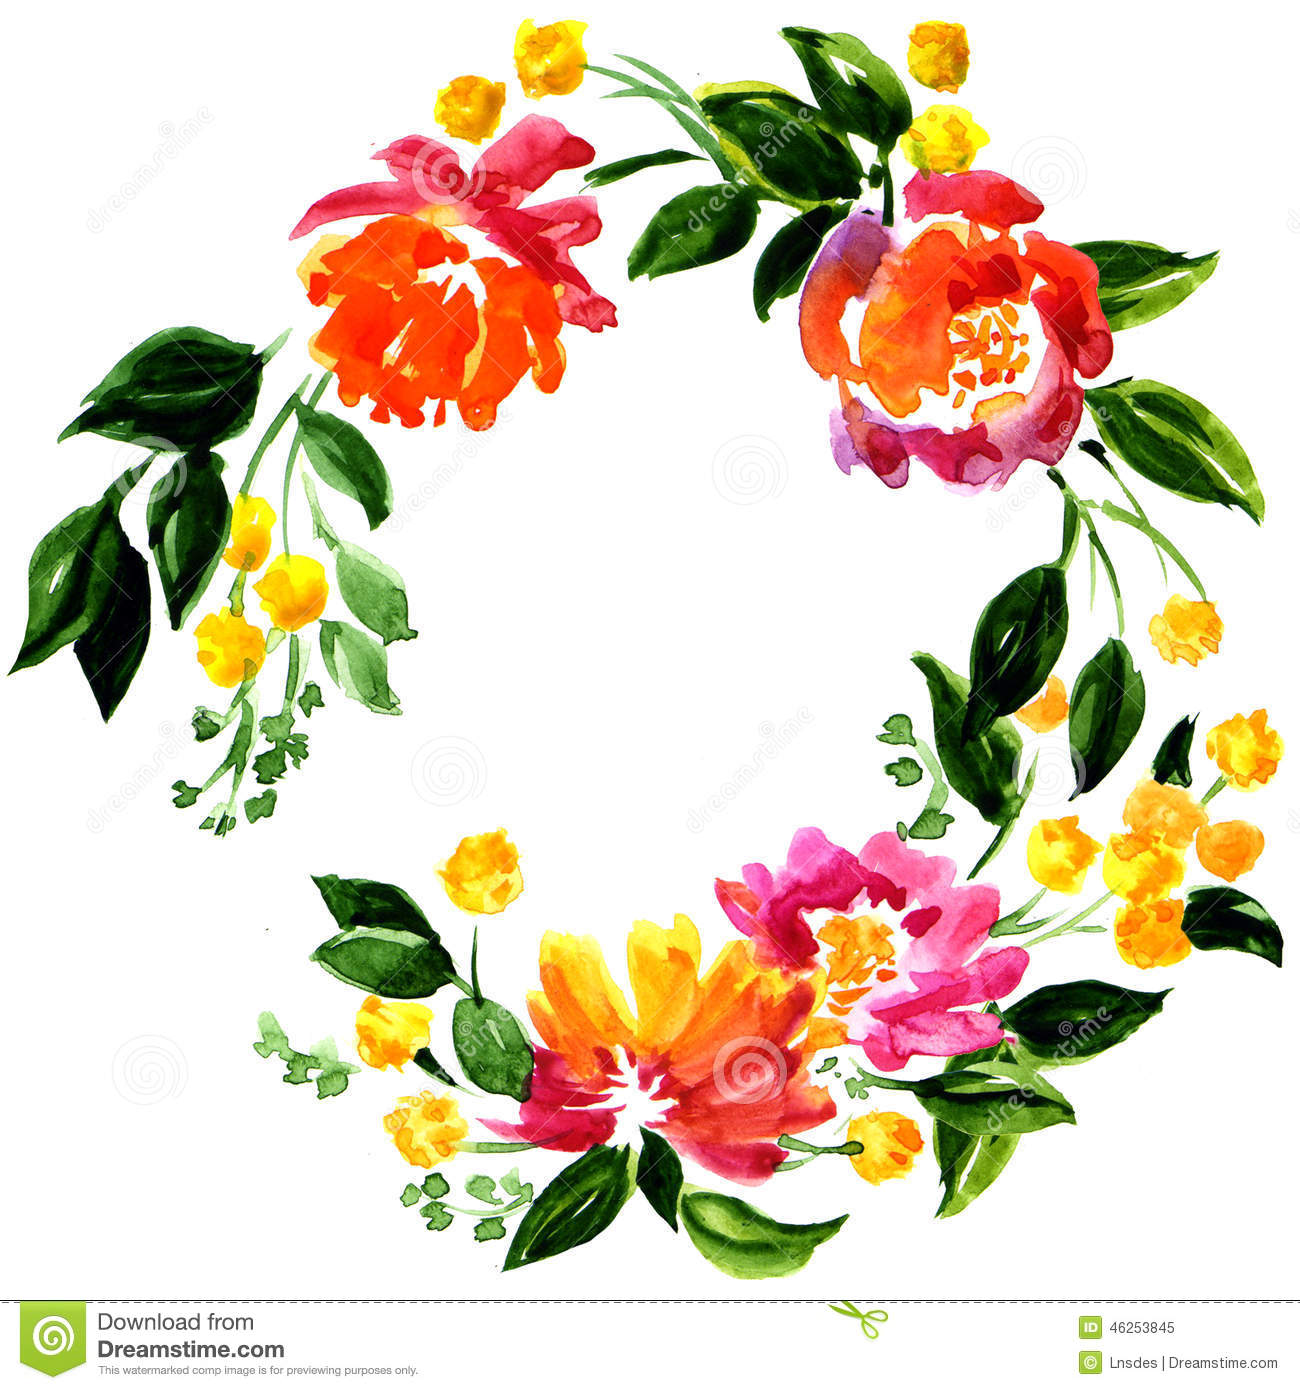 Beautiful greeting card with floral wreath stock illustration beautiful greeting card with floral wreath m4hsunfo Image collections